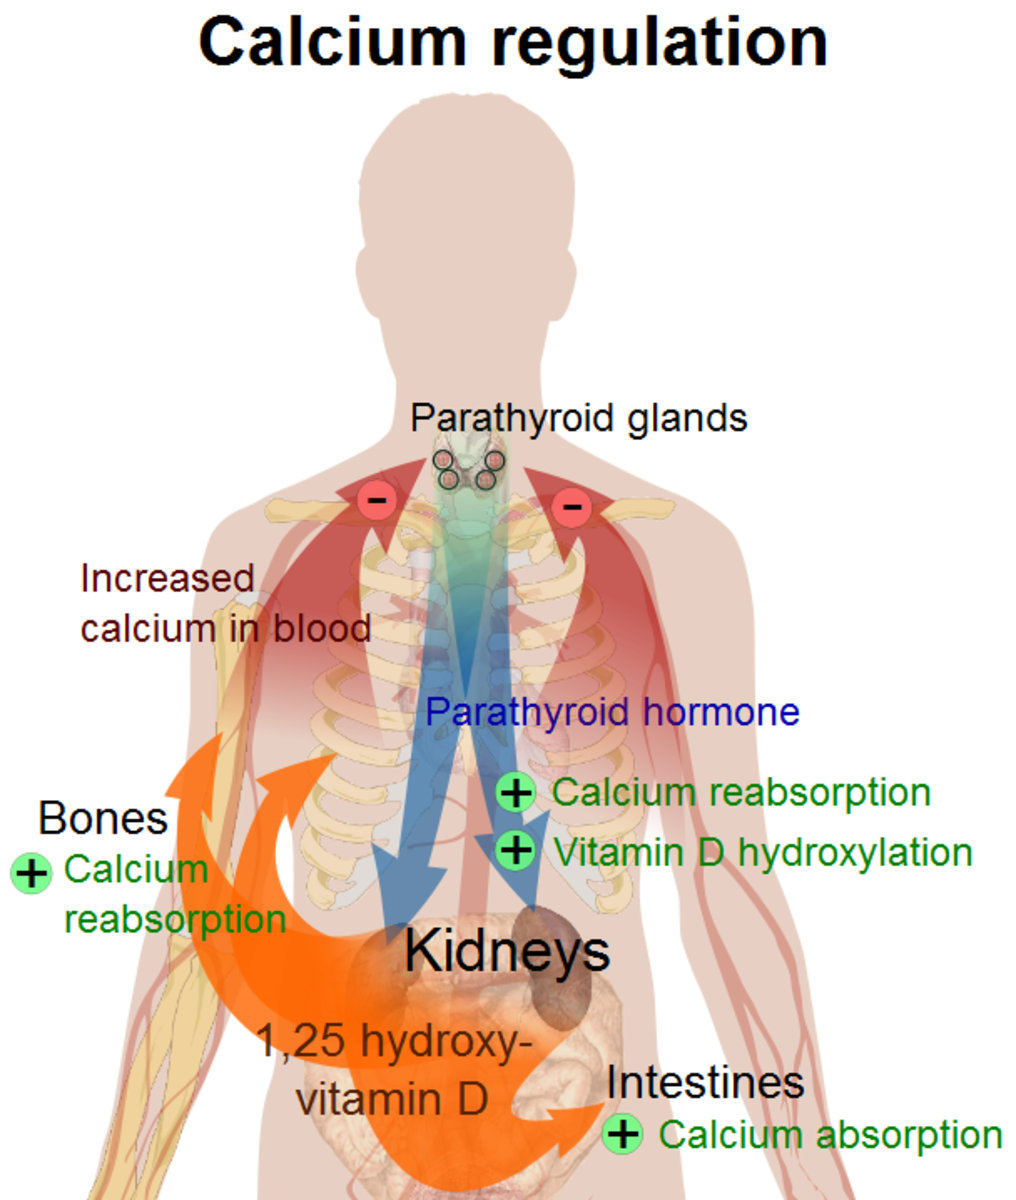 This image shows how calcium is regulated in the body. How vitamin D affects this regulation is shown in orange.